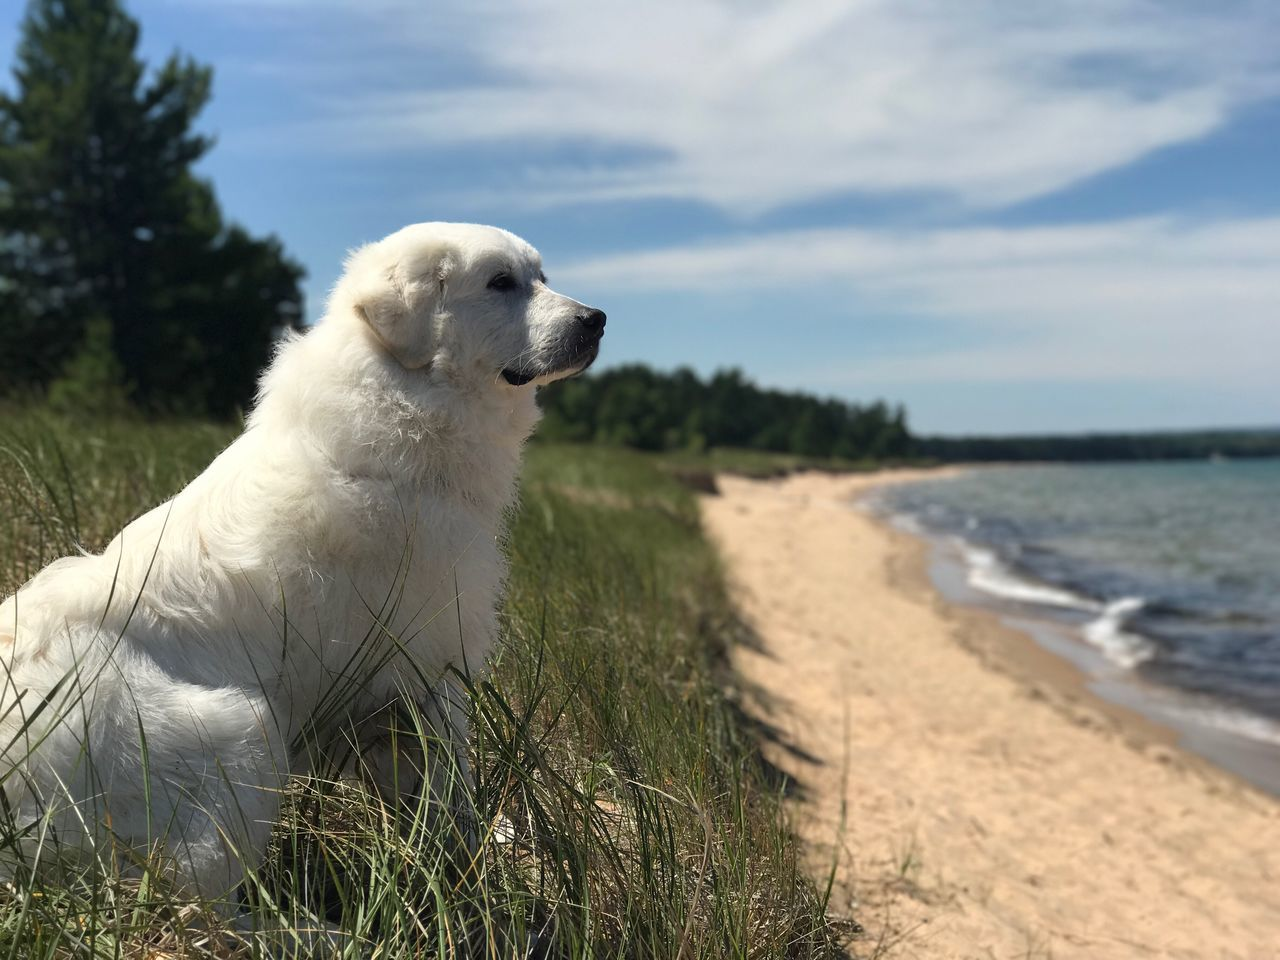 dog, pets, one animal, domestic animals, mammal, animal themes, golden retriever, outdoors, nature, day, sky, grass, no people, labrador retriever, water, beauty in nature